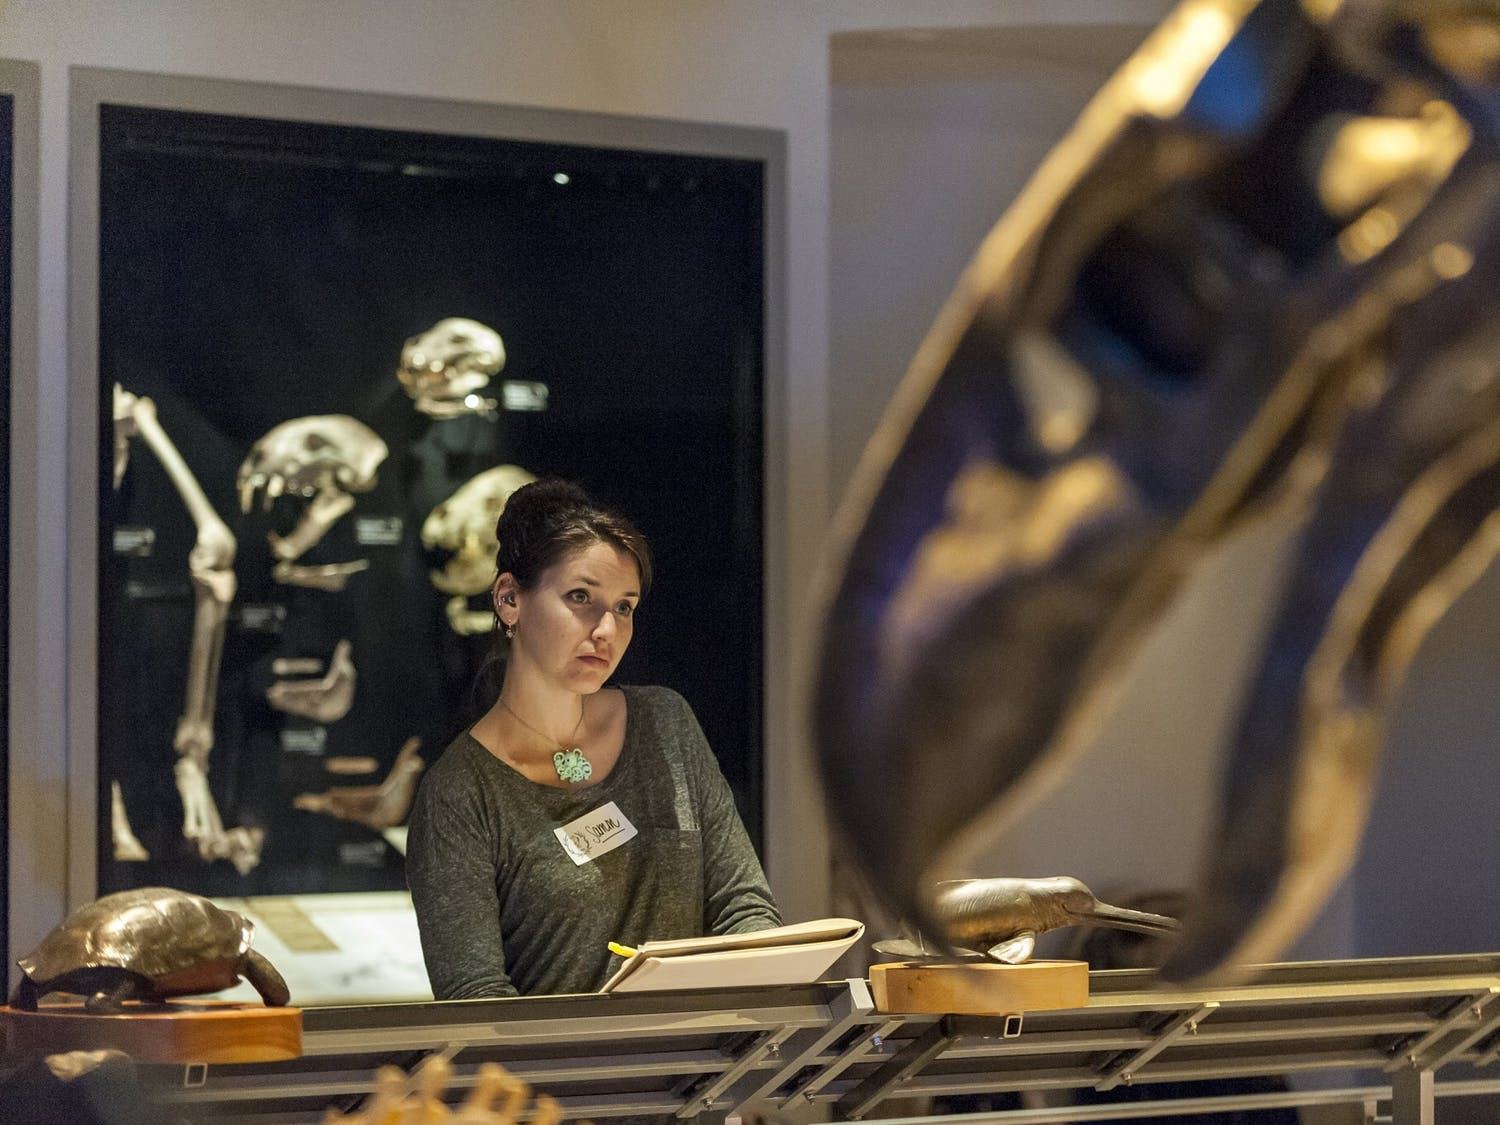 The beauty of science was displayed starting Feb. 8, 2019 at the Florida Museum of Natural History.